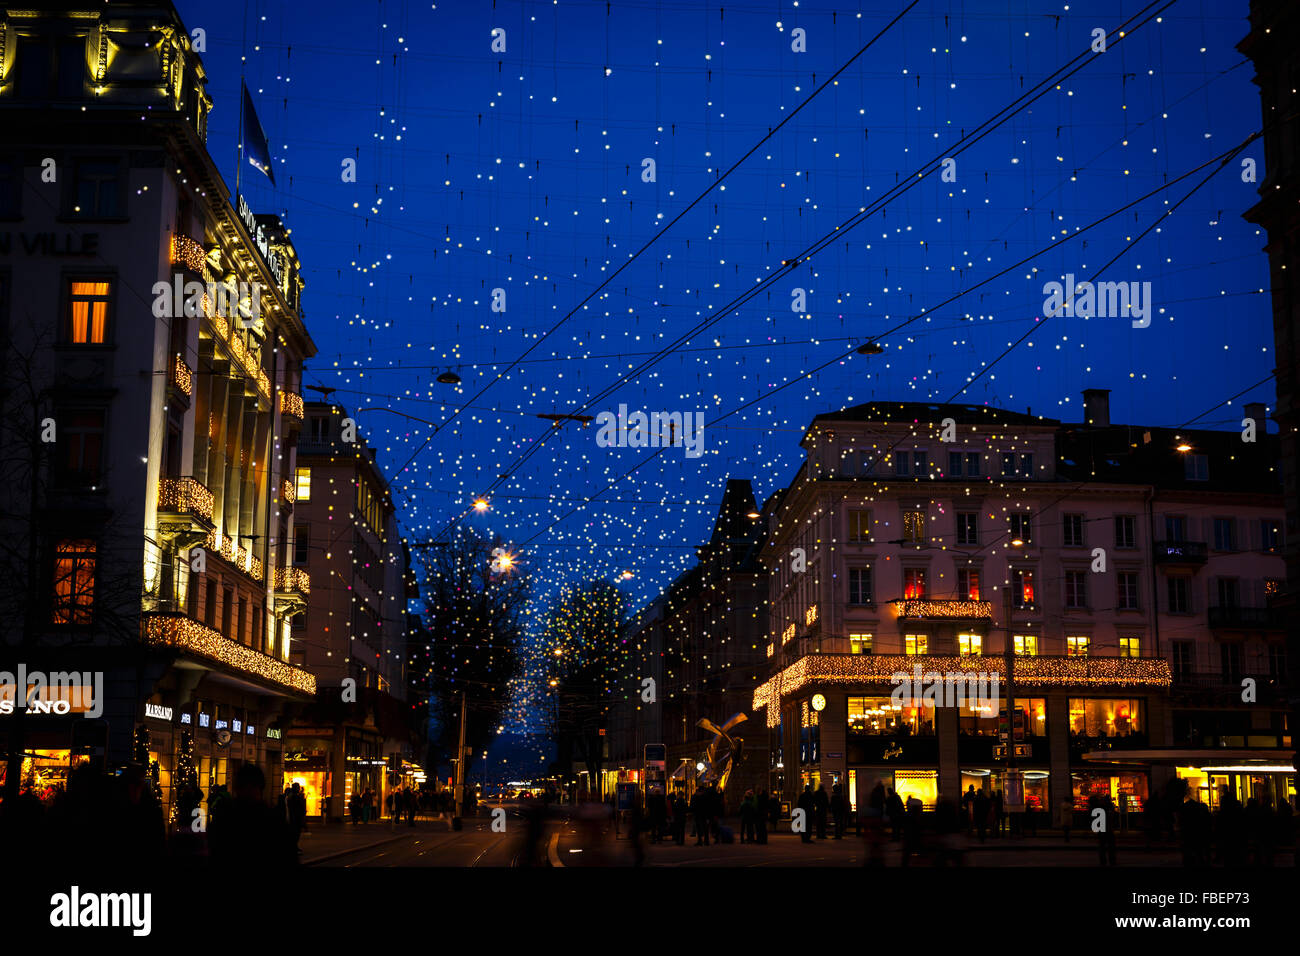 Christmas lights on the Bahnhofstrasse in Zurich, Switzerland. - Stock Image